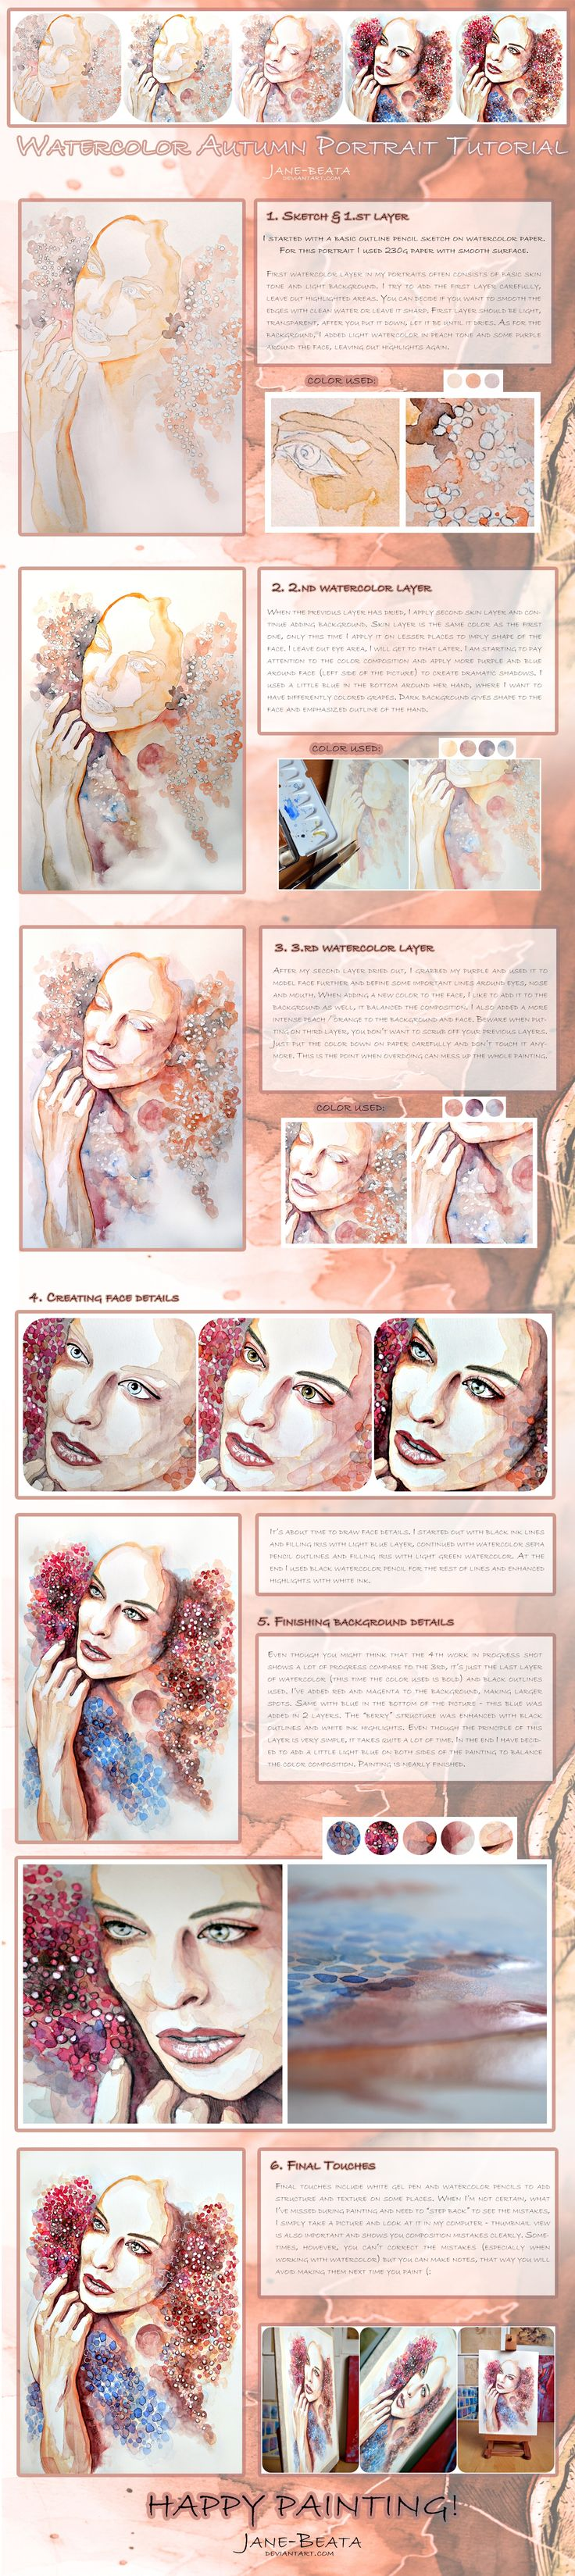 Watercolor Autumn Portrait Tutorial by jane-beata.deviantart.com on @deviantART